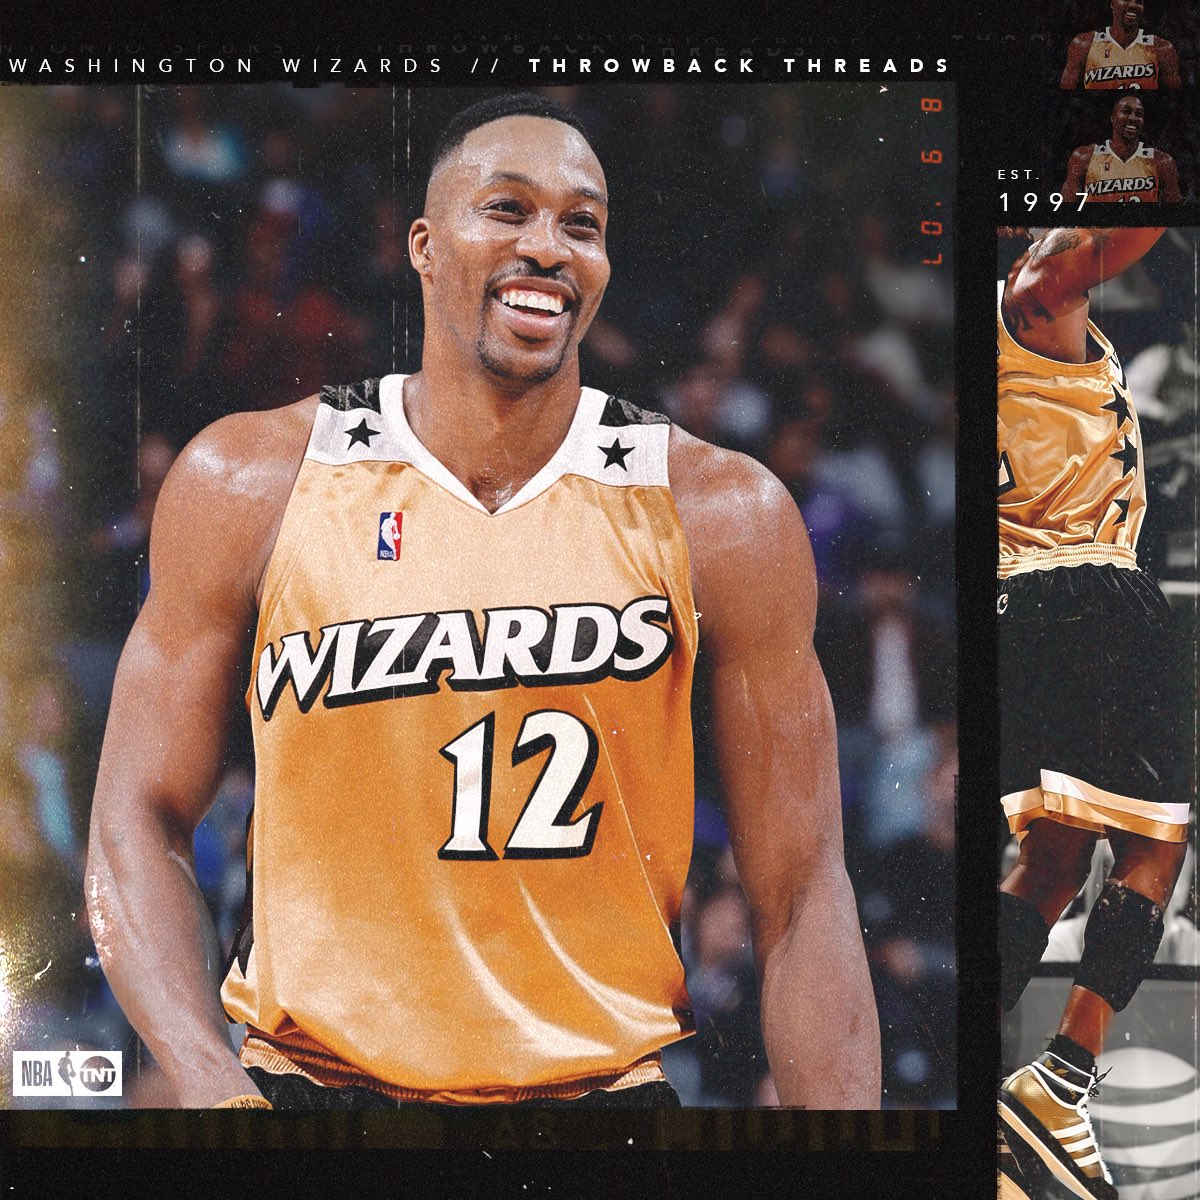 All smiles in Washington for @DwightHoward! ��  Throwback Threads x #TBT �� https://t.co/d6f0SFxIWe